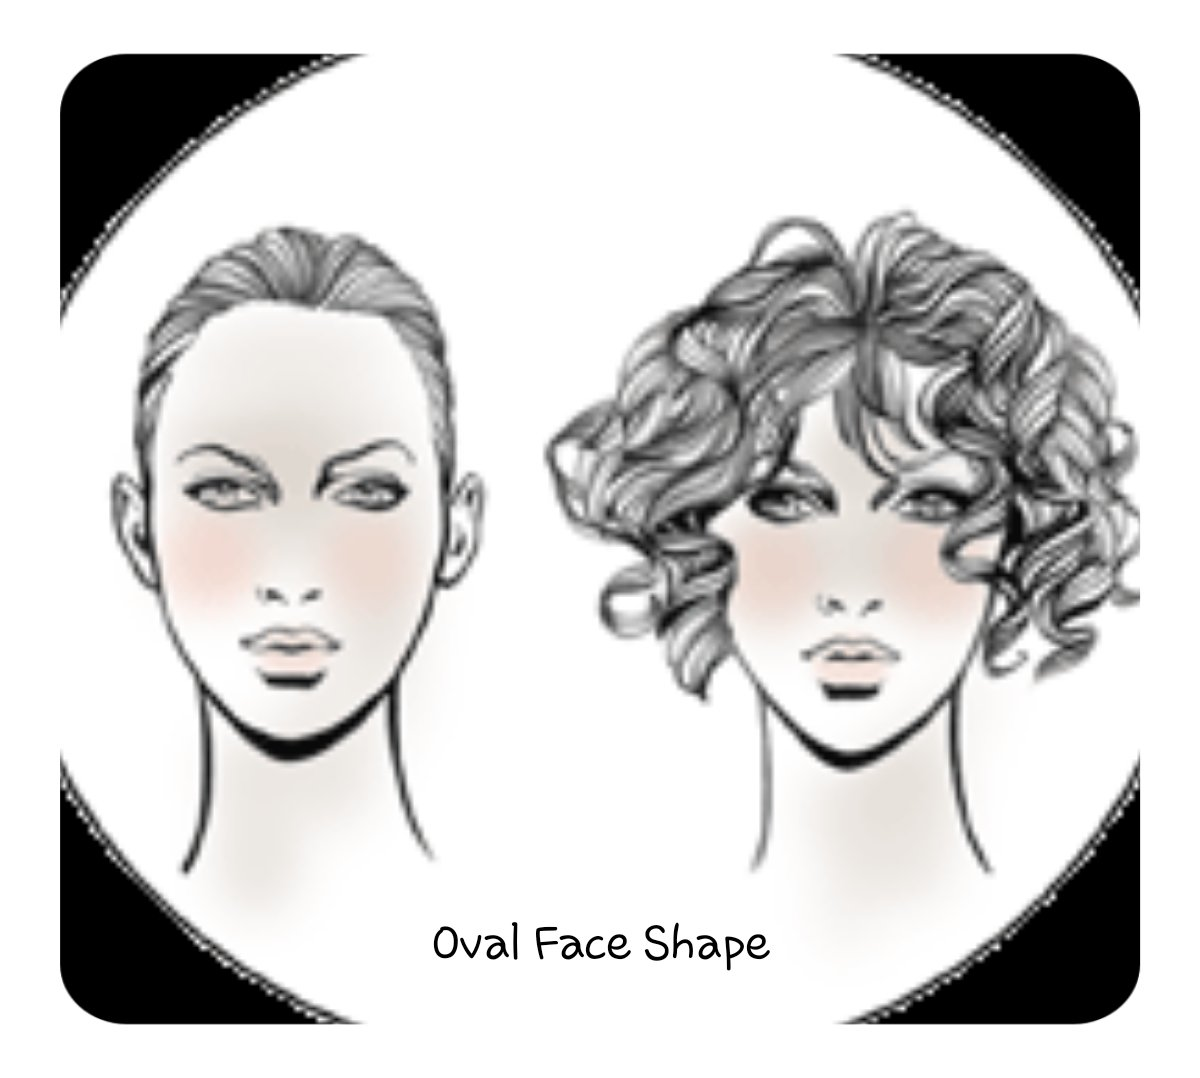 Oval Face shape for hair extensions